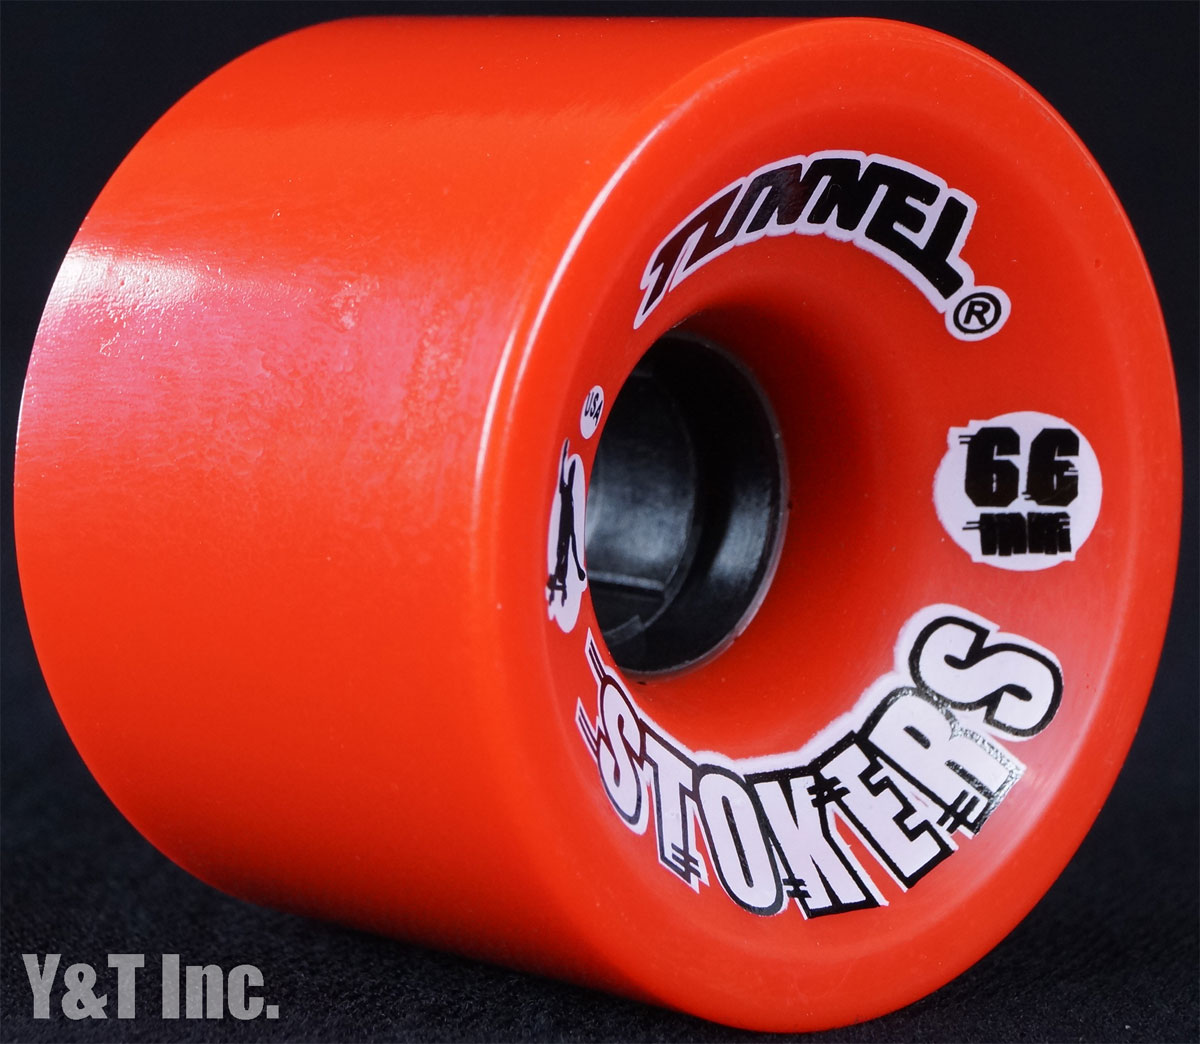 TUNNEL STOKERS 66mm 78a Red 2